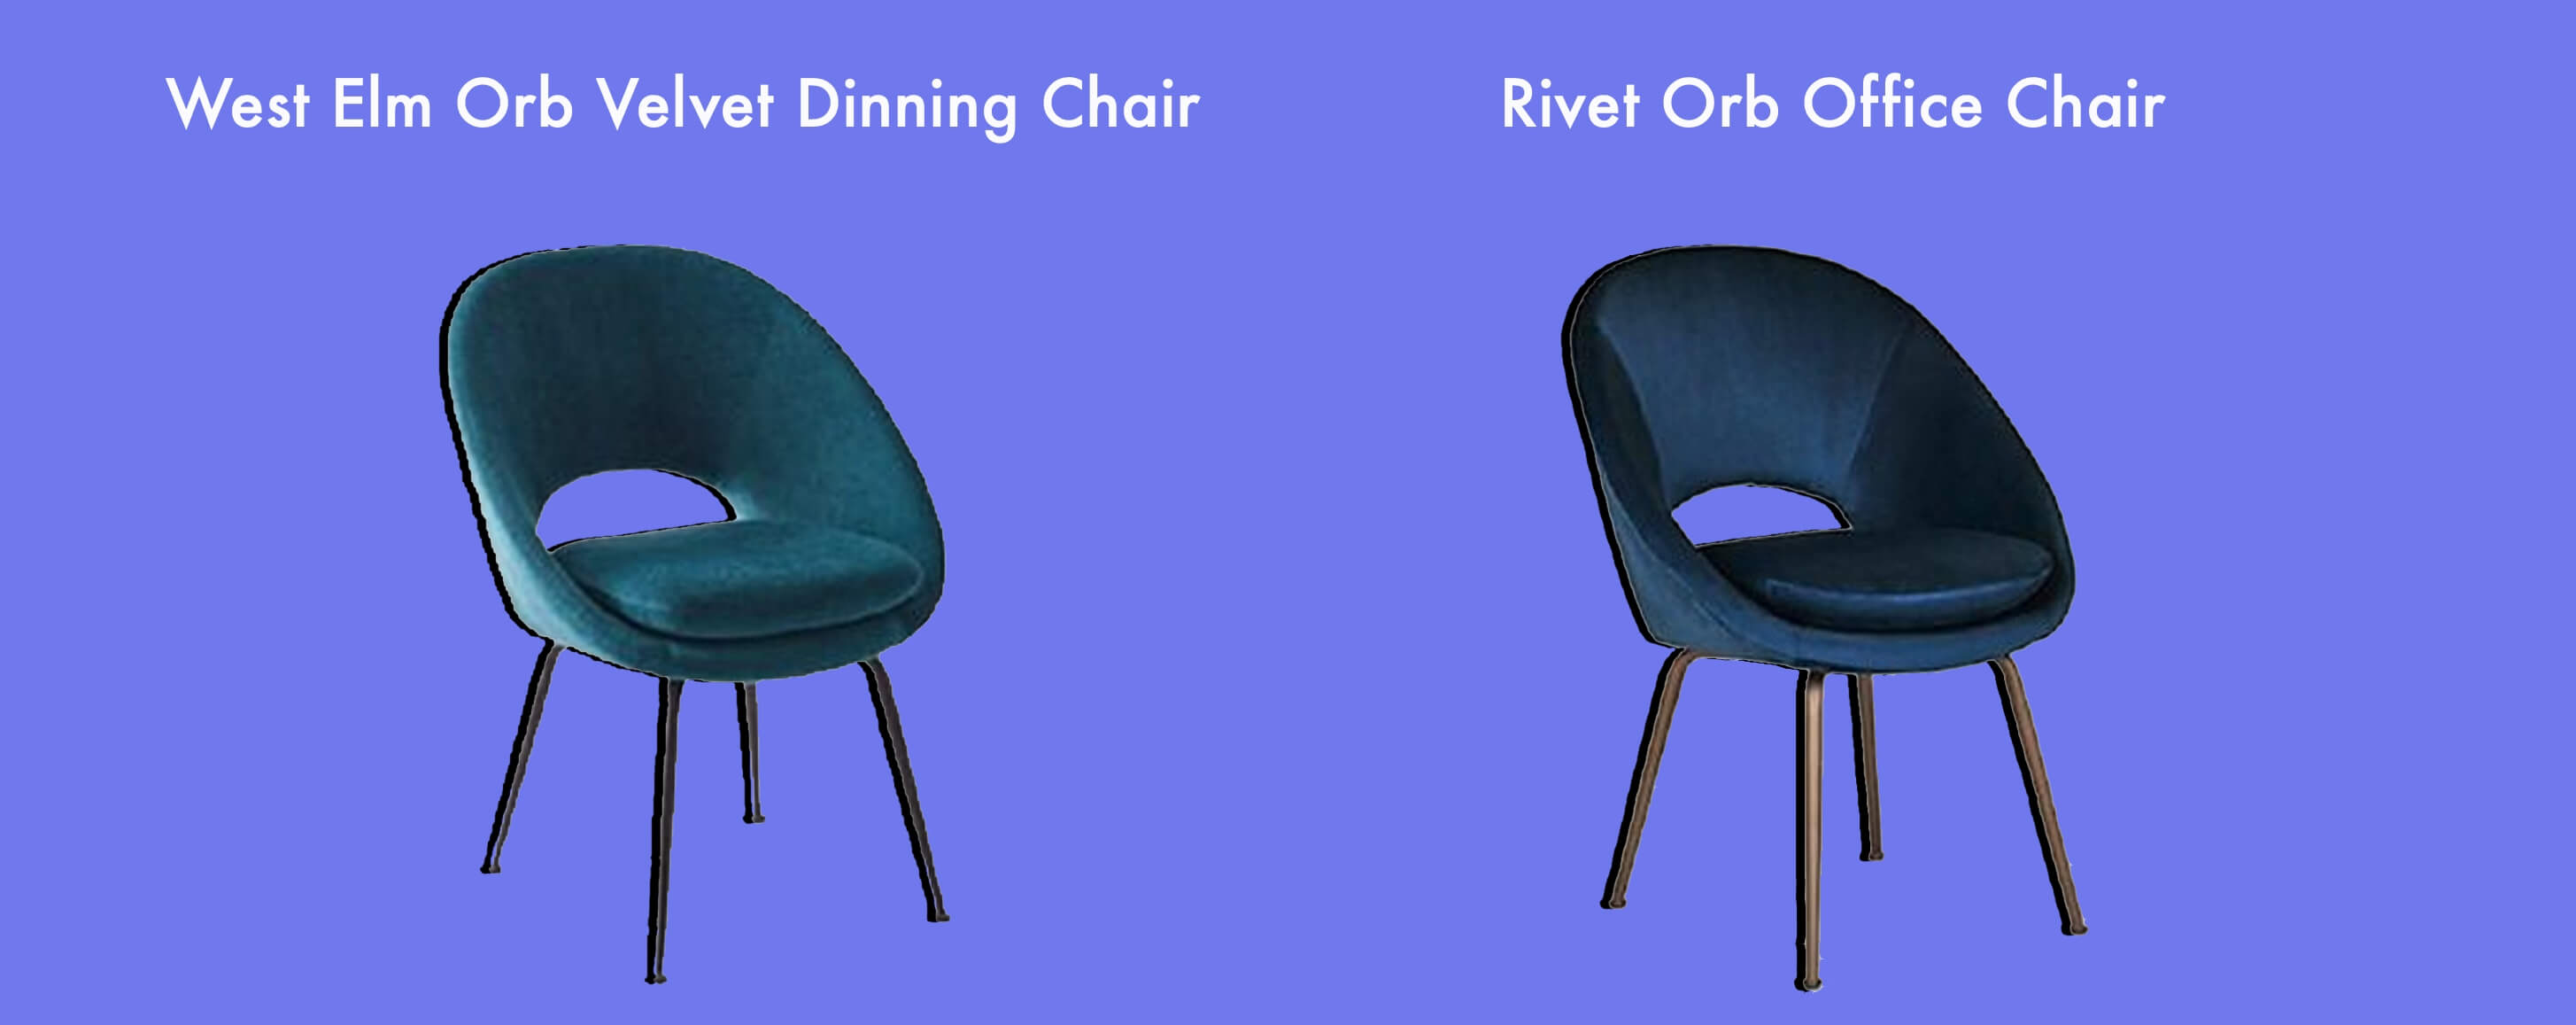 West Elm Orb Velvet Dinning Chair vs Rivet Orb Office Chair